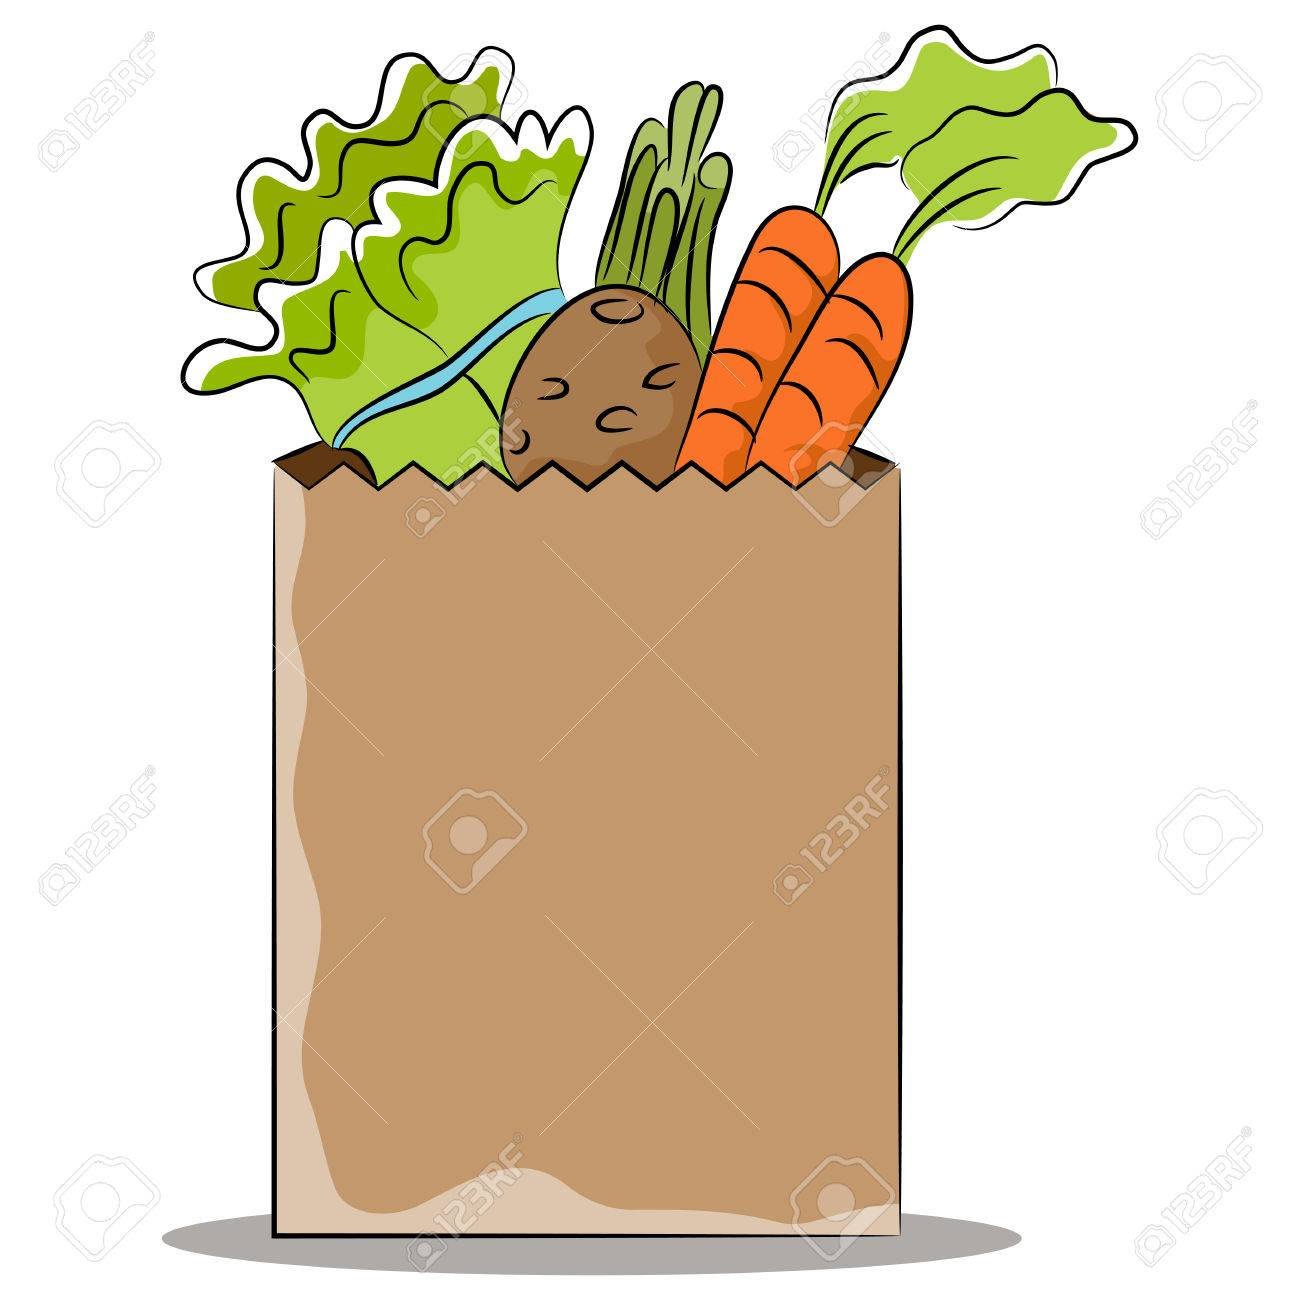 An image of a grocery bag of healthy vegetables..